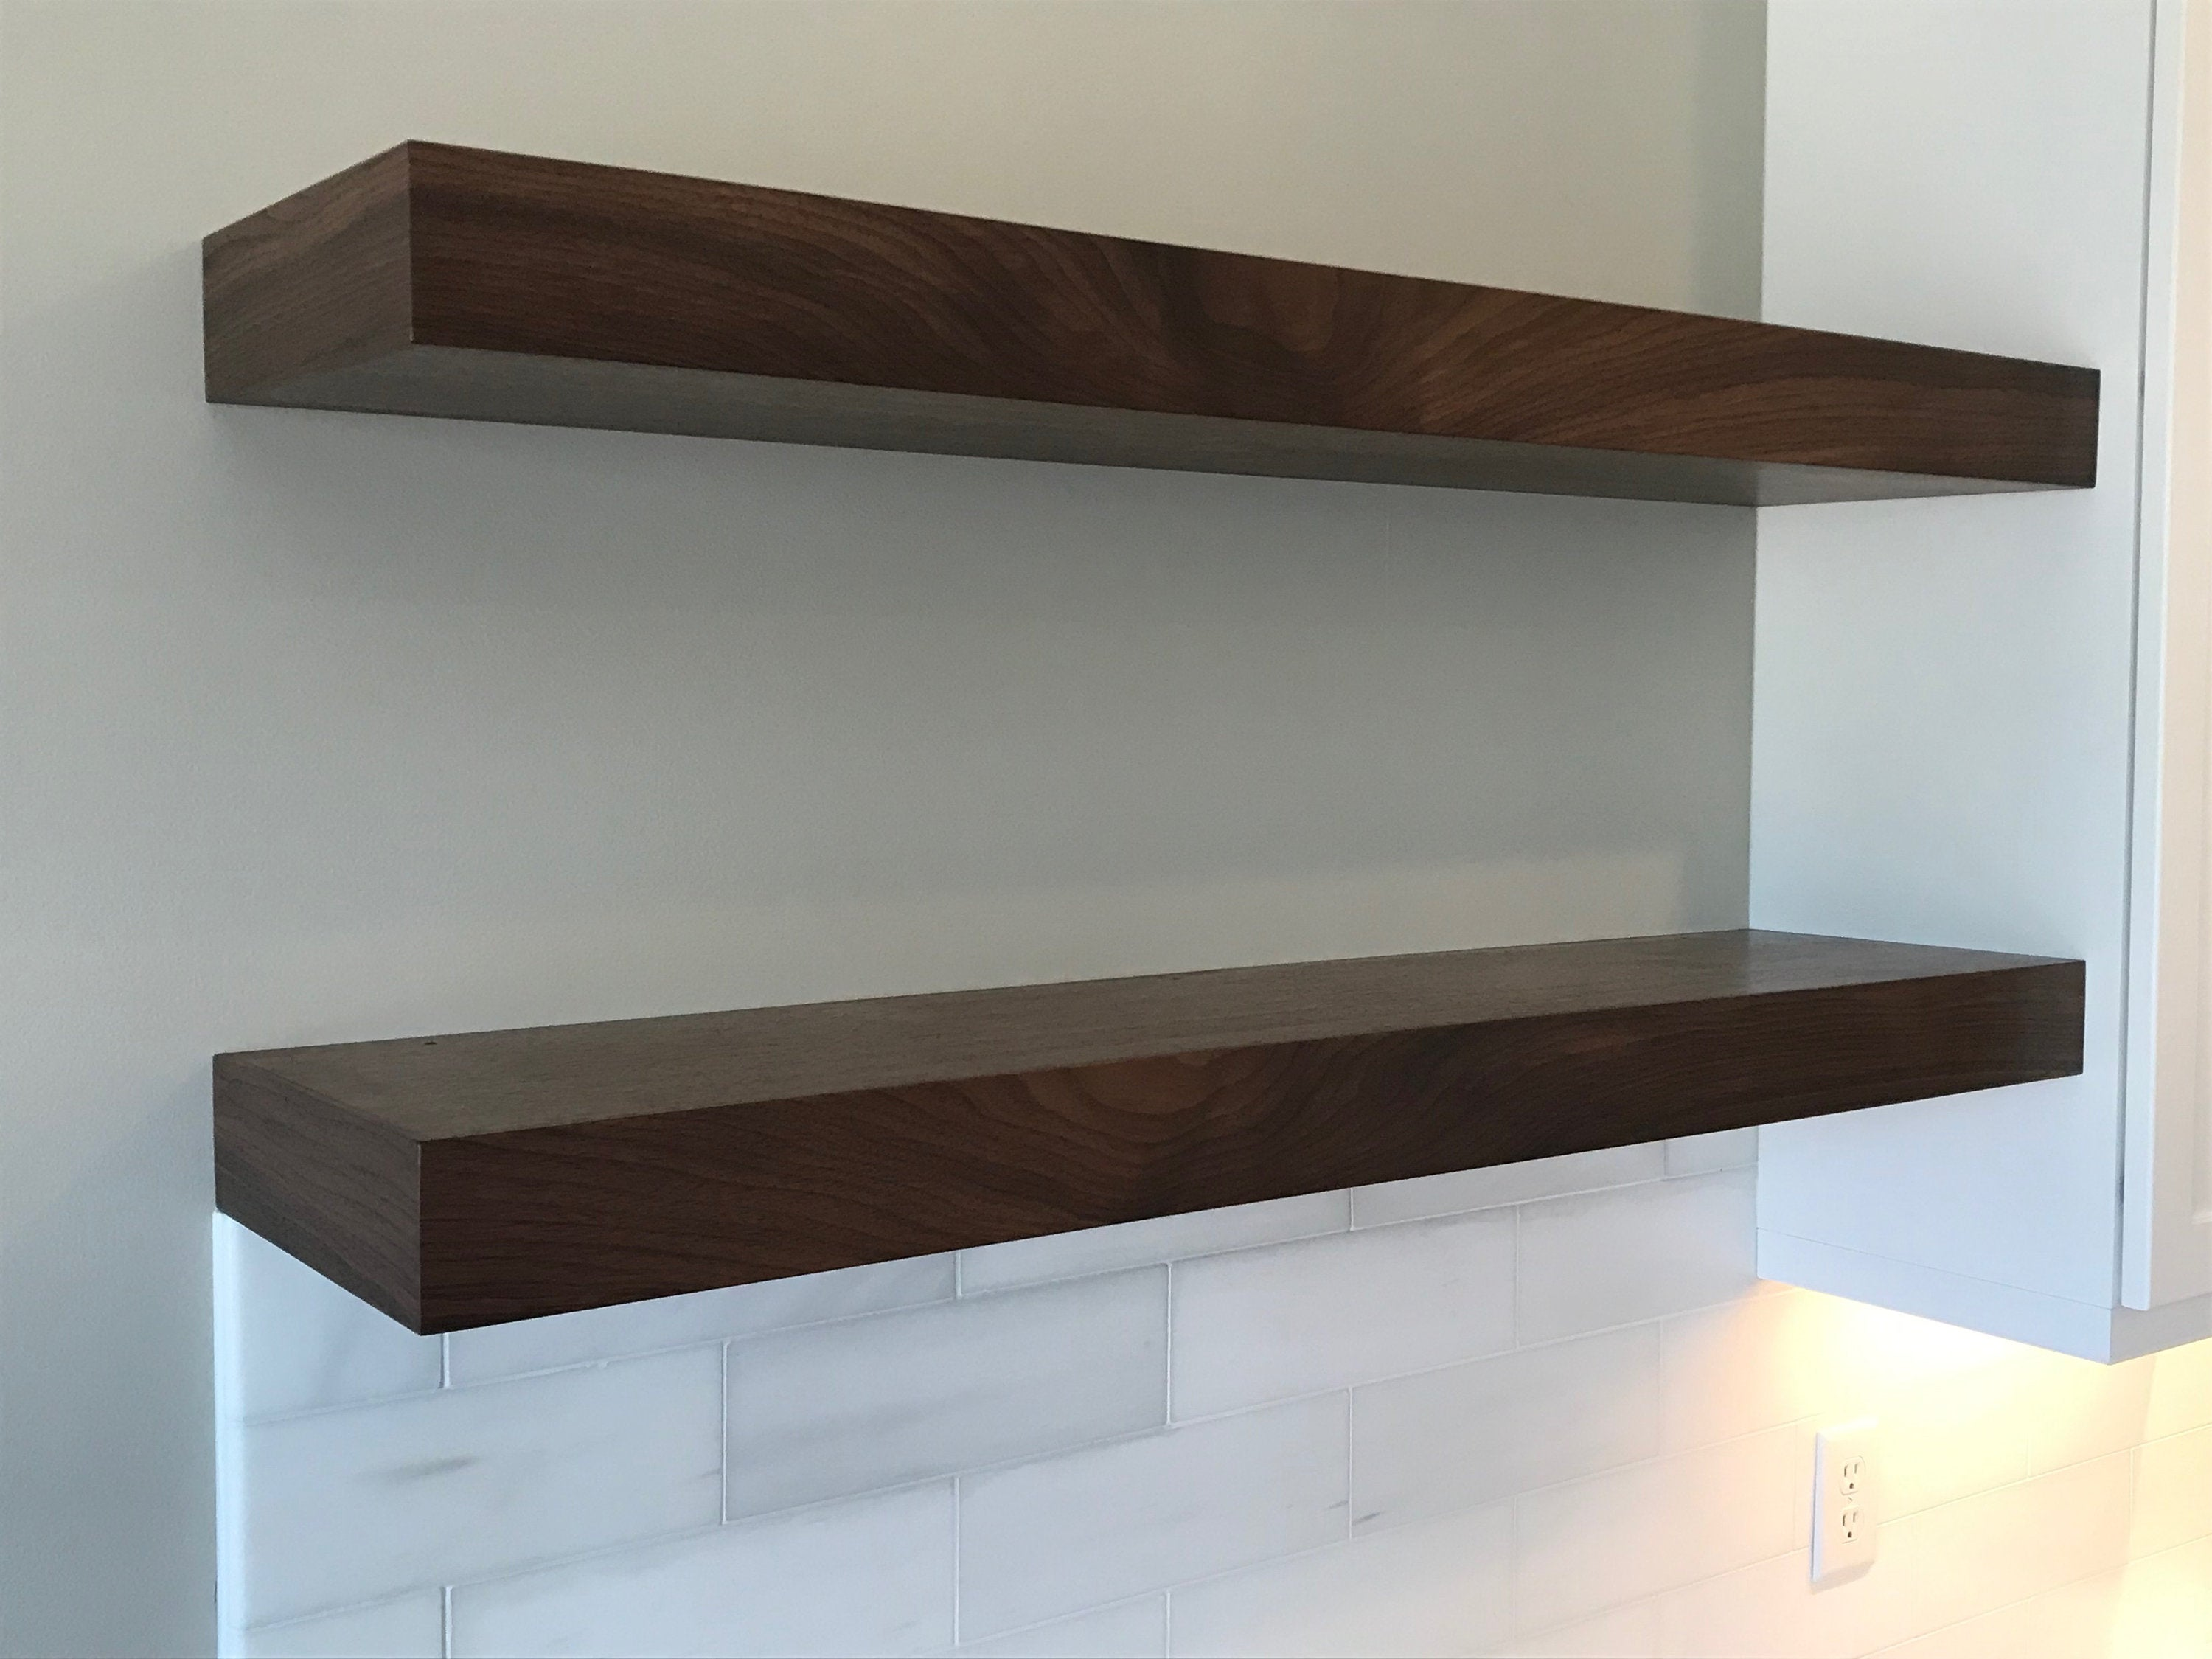 floating shelves walnut white oak mahogany etsy fullxfull shelf for sky box tier hanging kitchen prep cart dvd player bracket tire stand canadian make cleats corner unit bookcase